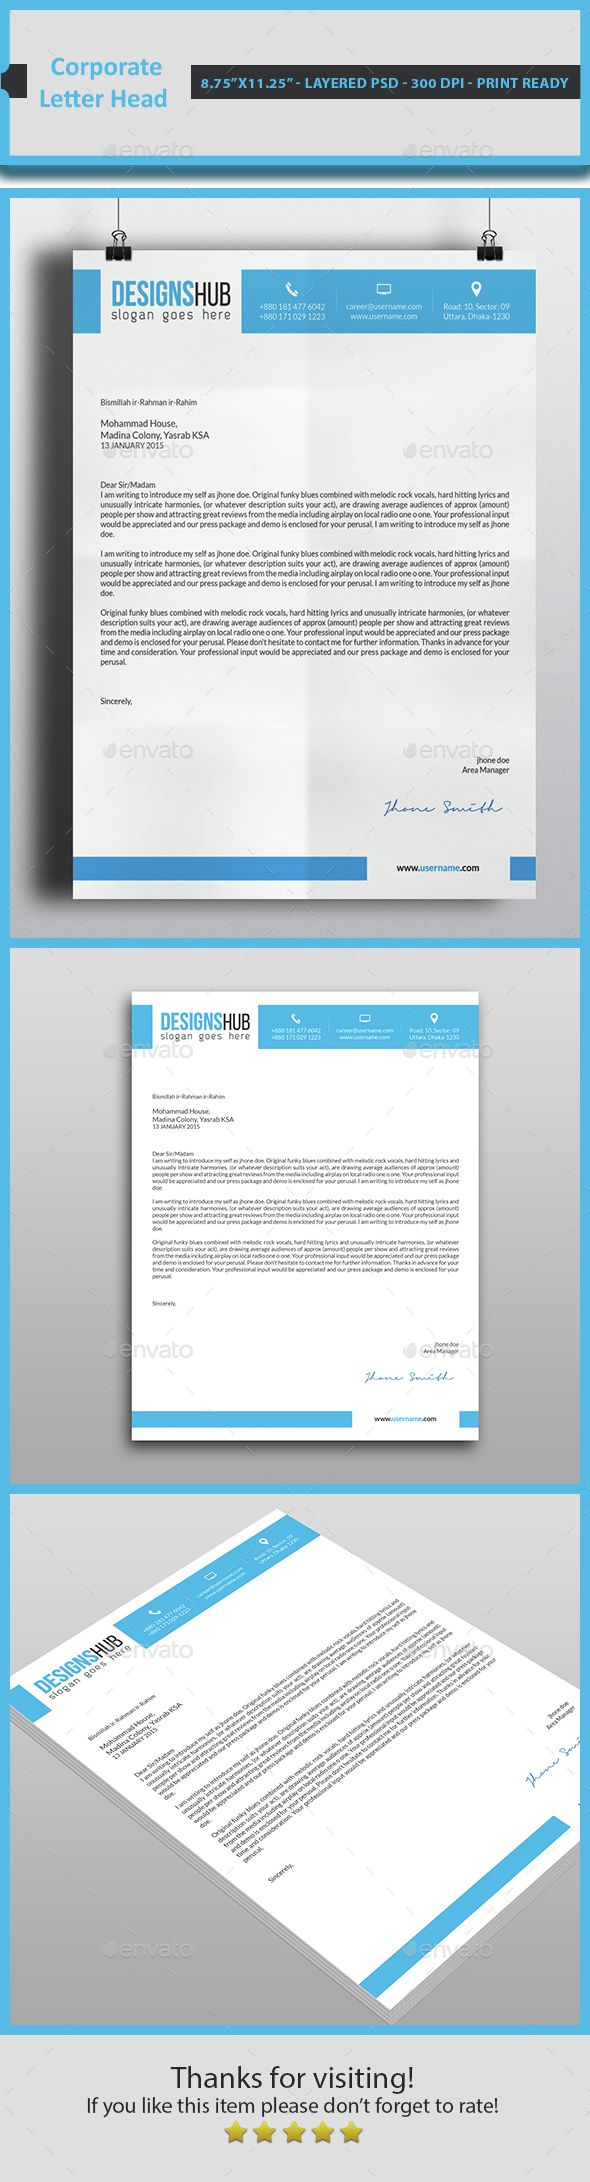 Corporate letter head stationery printing print templates and corporate letter head stationery print templates download here https spiritdancerdesigns Choice Image